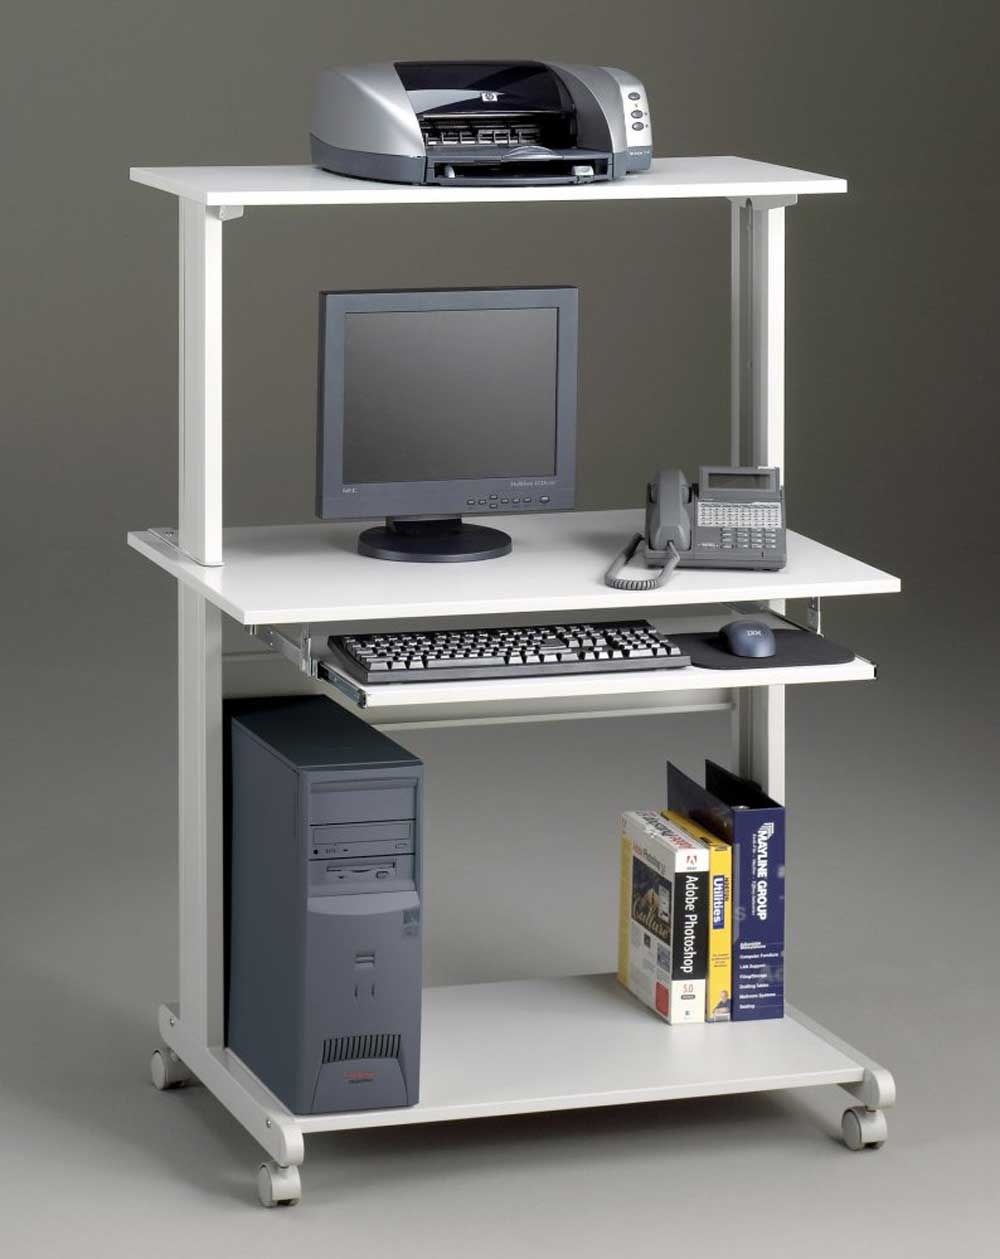 Stylish mobile home office computer cart